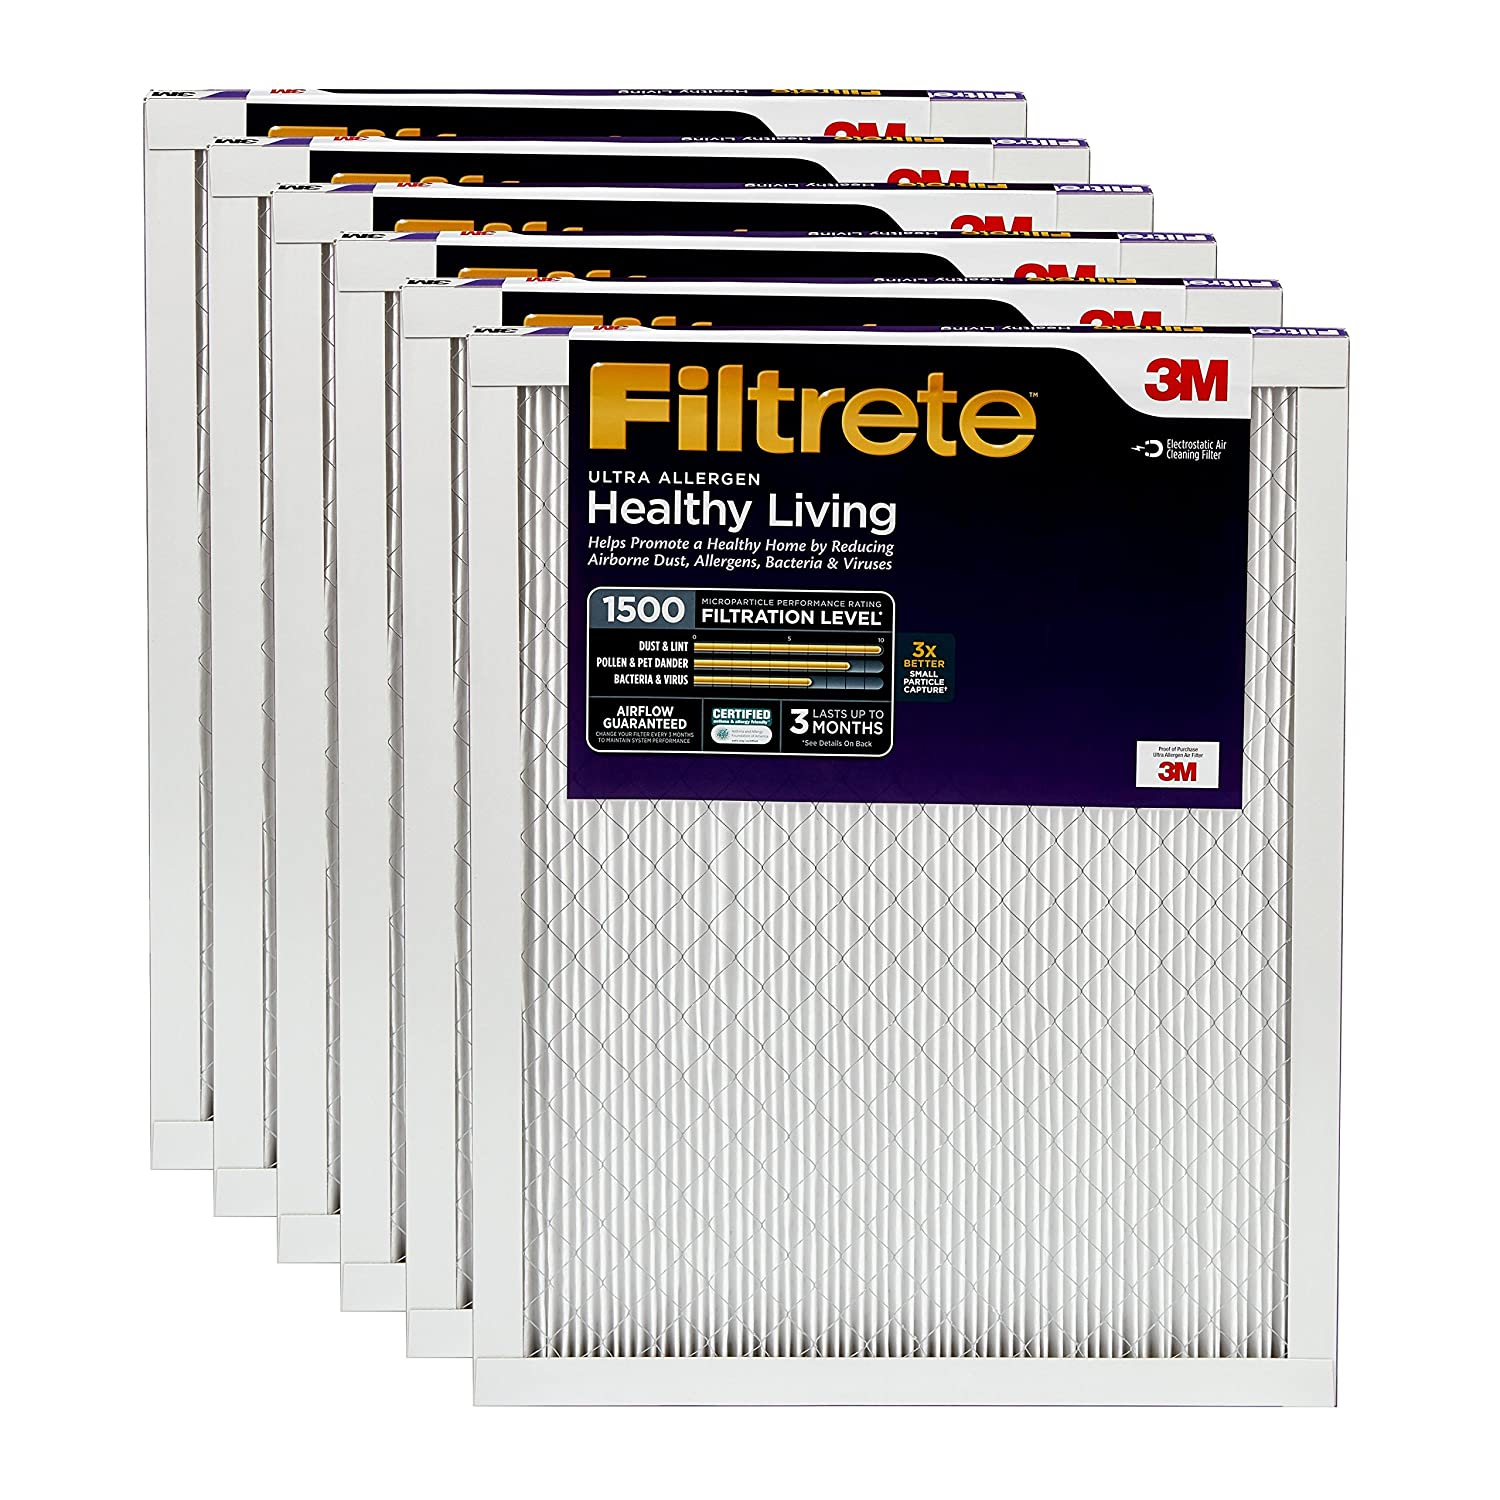 4. Filtrete Healthy Living Ultra Allergen UR02-6PK-1E - 3M Air Filter 20x20x1